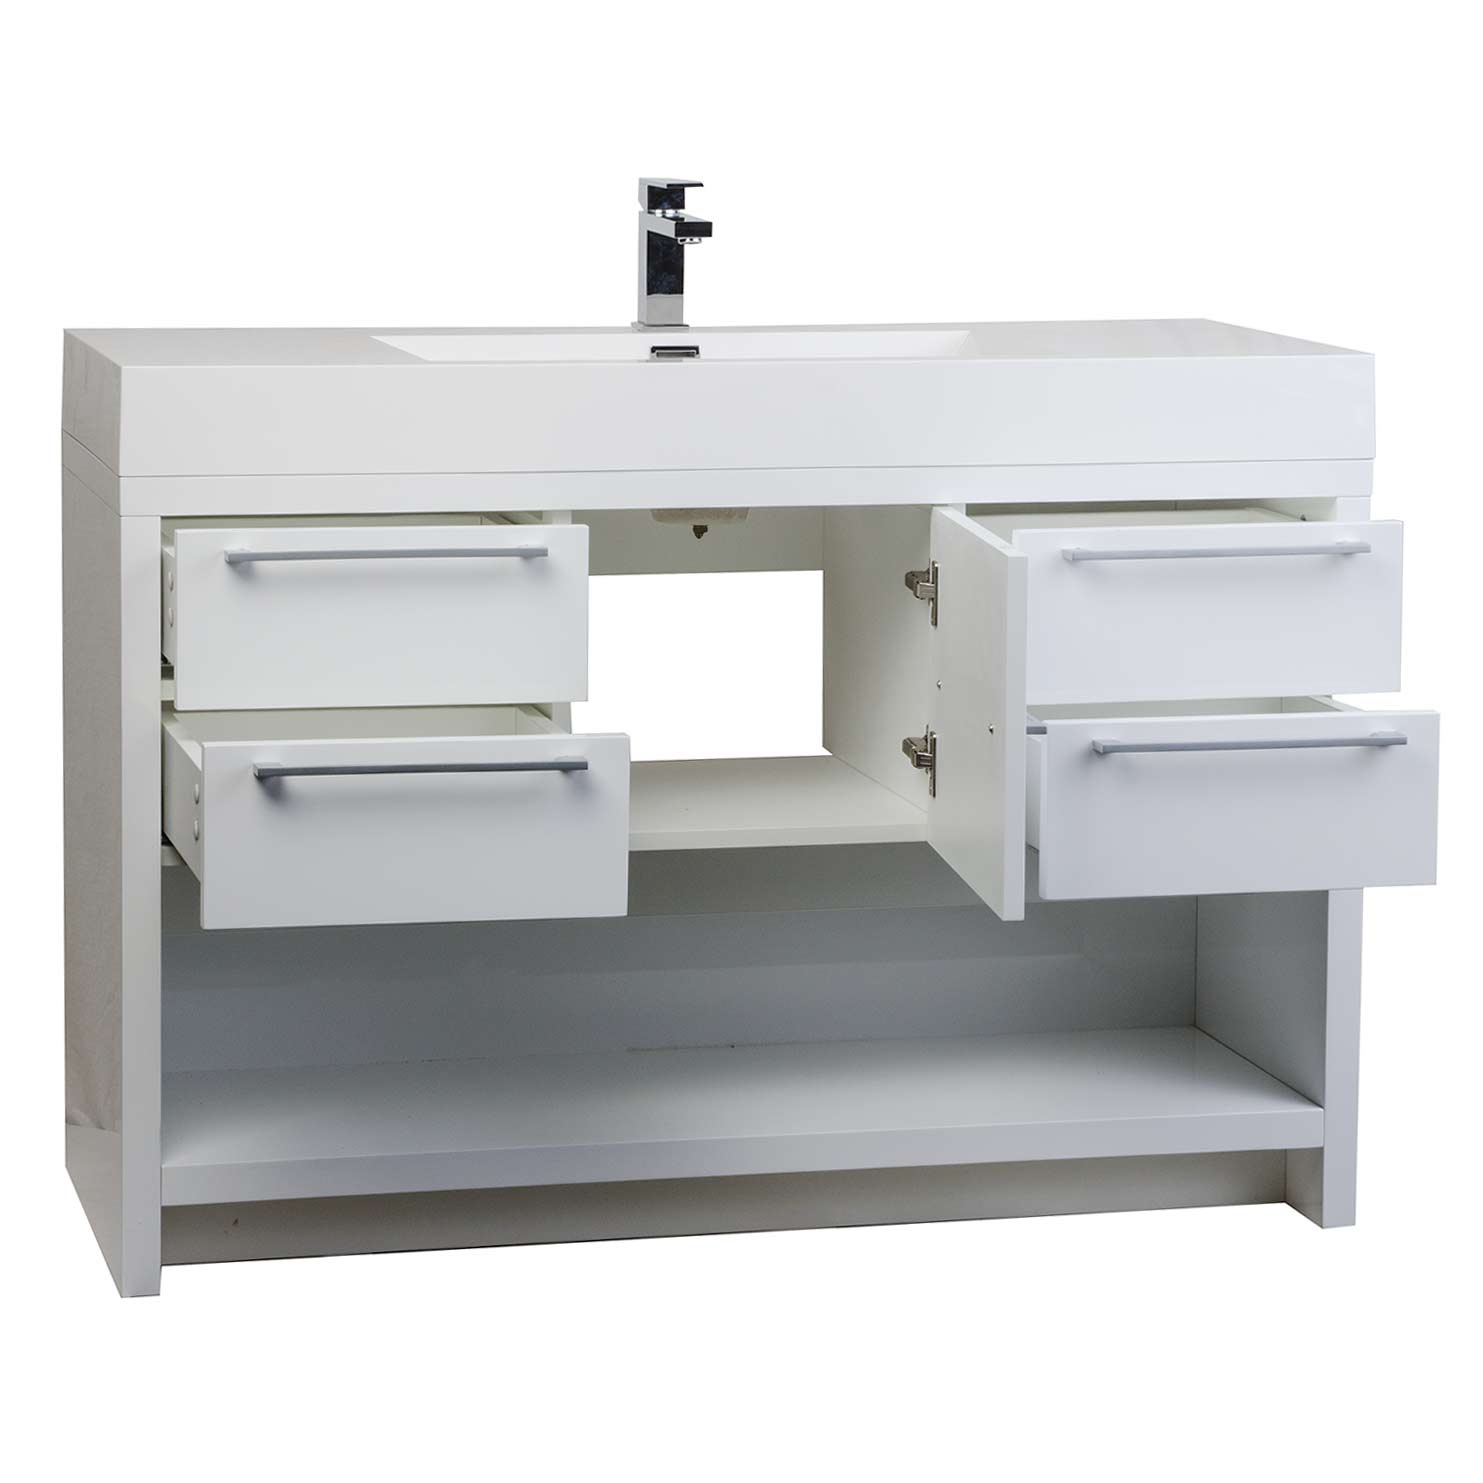 Where To Buy Bathroom Cabinets 28 Images Where To Buy Bathroom Vanities Bathroom Vanities